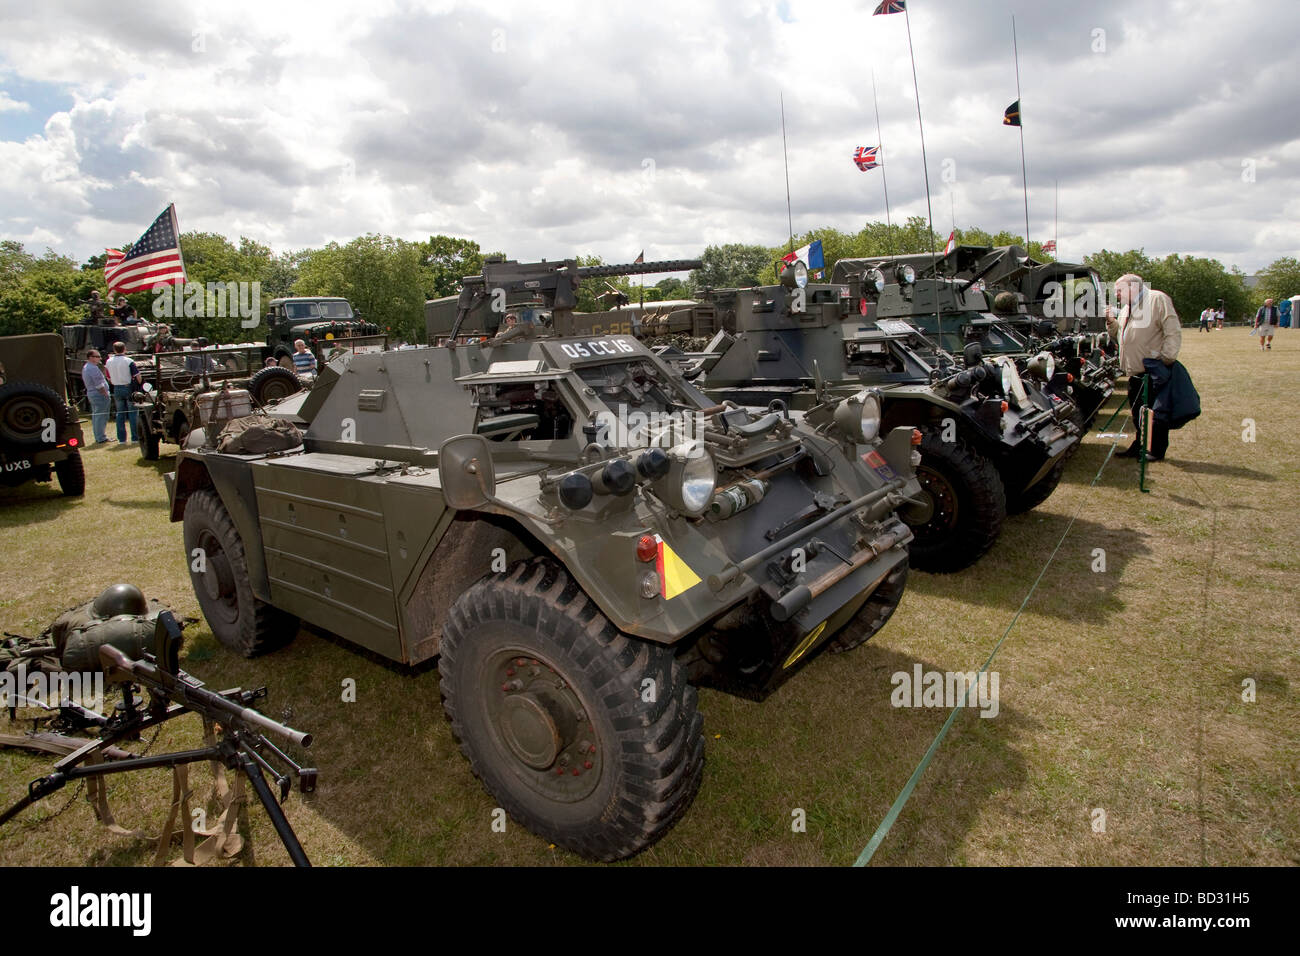 Military armored vehicles are displayed at the Colchester Military Festival in Colchester, Essex, England Stock Photo